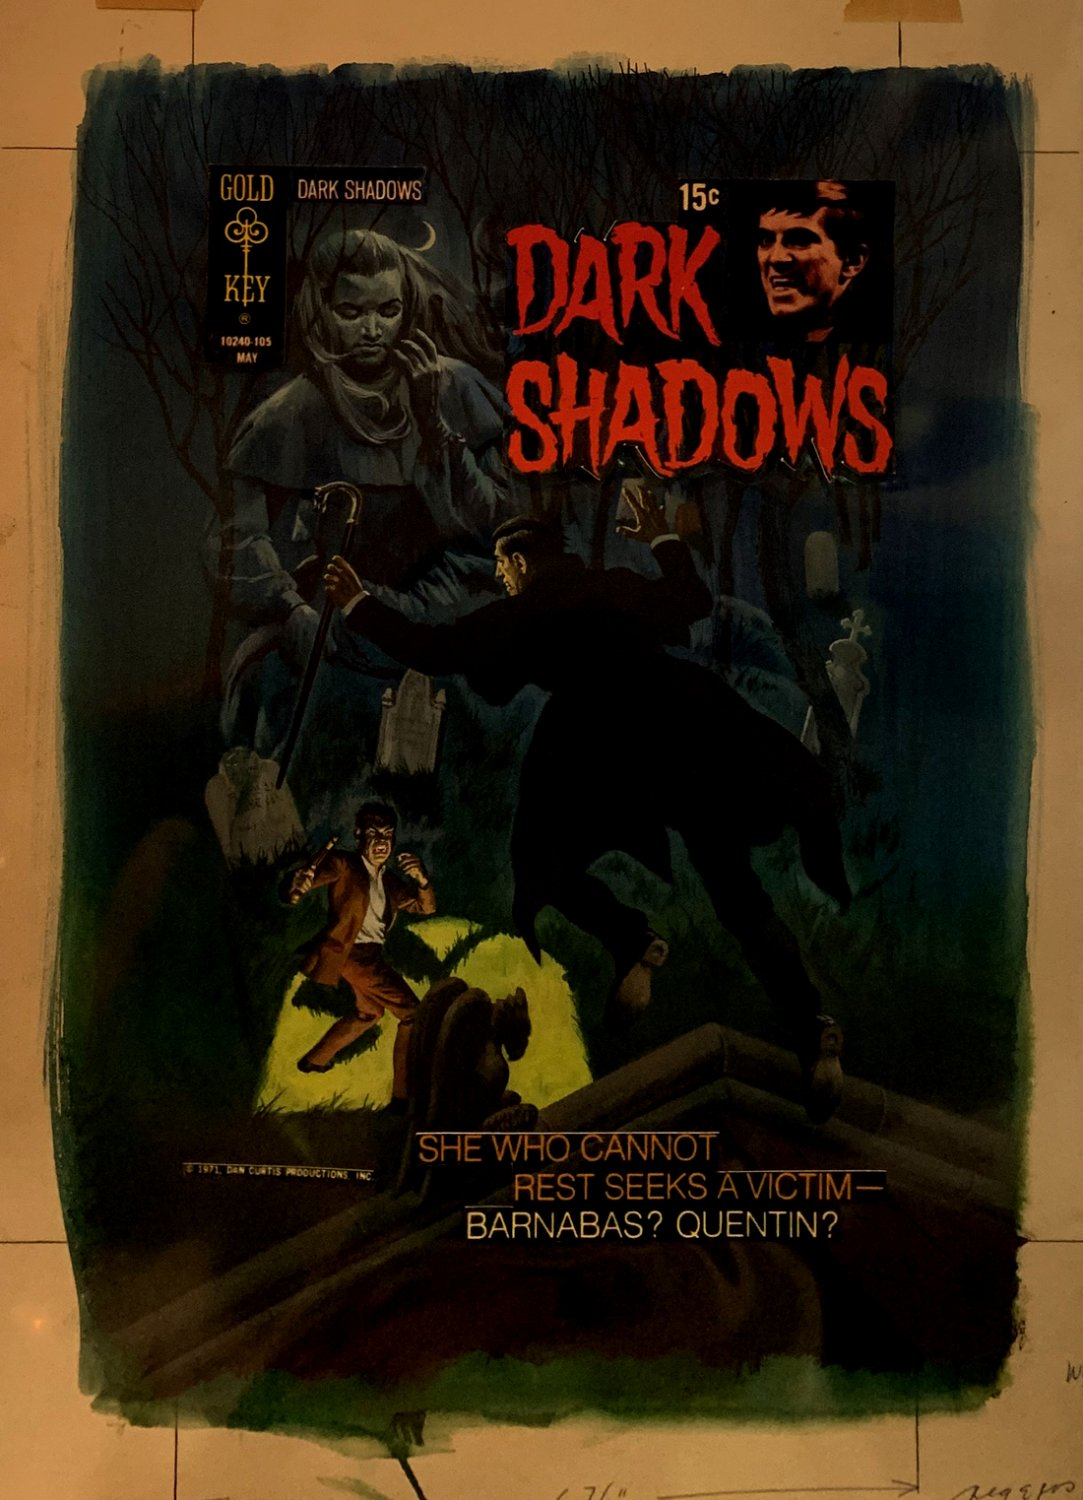 Dark Shadows #9 Oversized Cover Painting